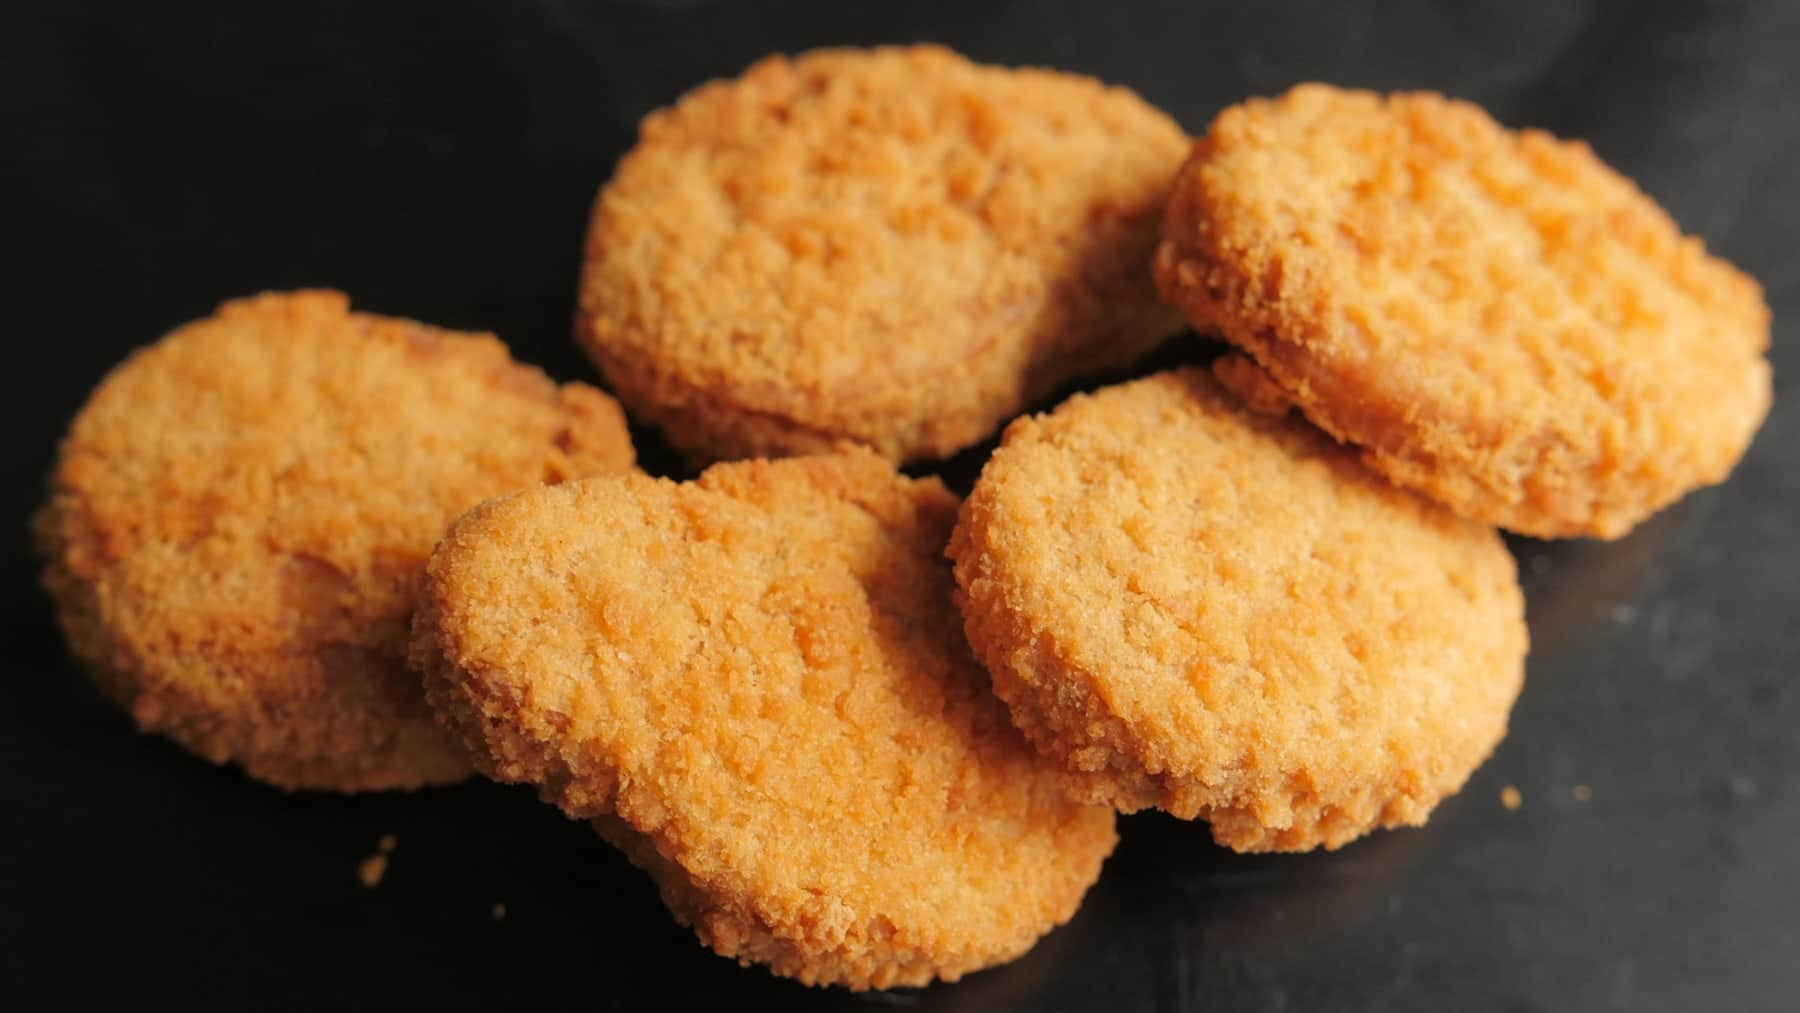 a0c4e59a1102 For £3.99, you can get your hands on What The Pitta's Vegan Nuggets, which  will come served with a homemade dip of your choice.